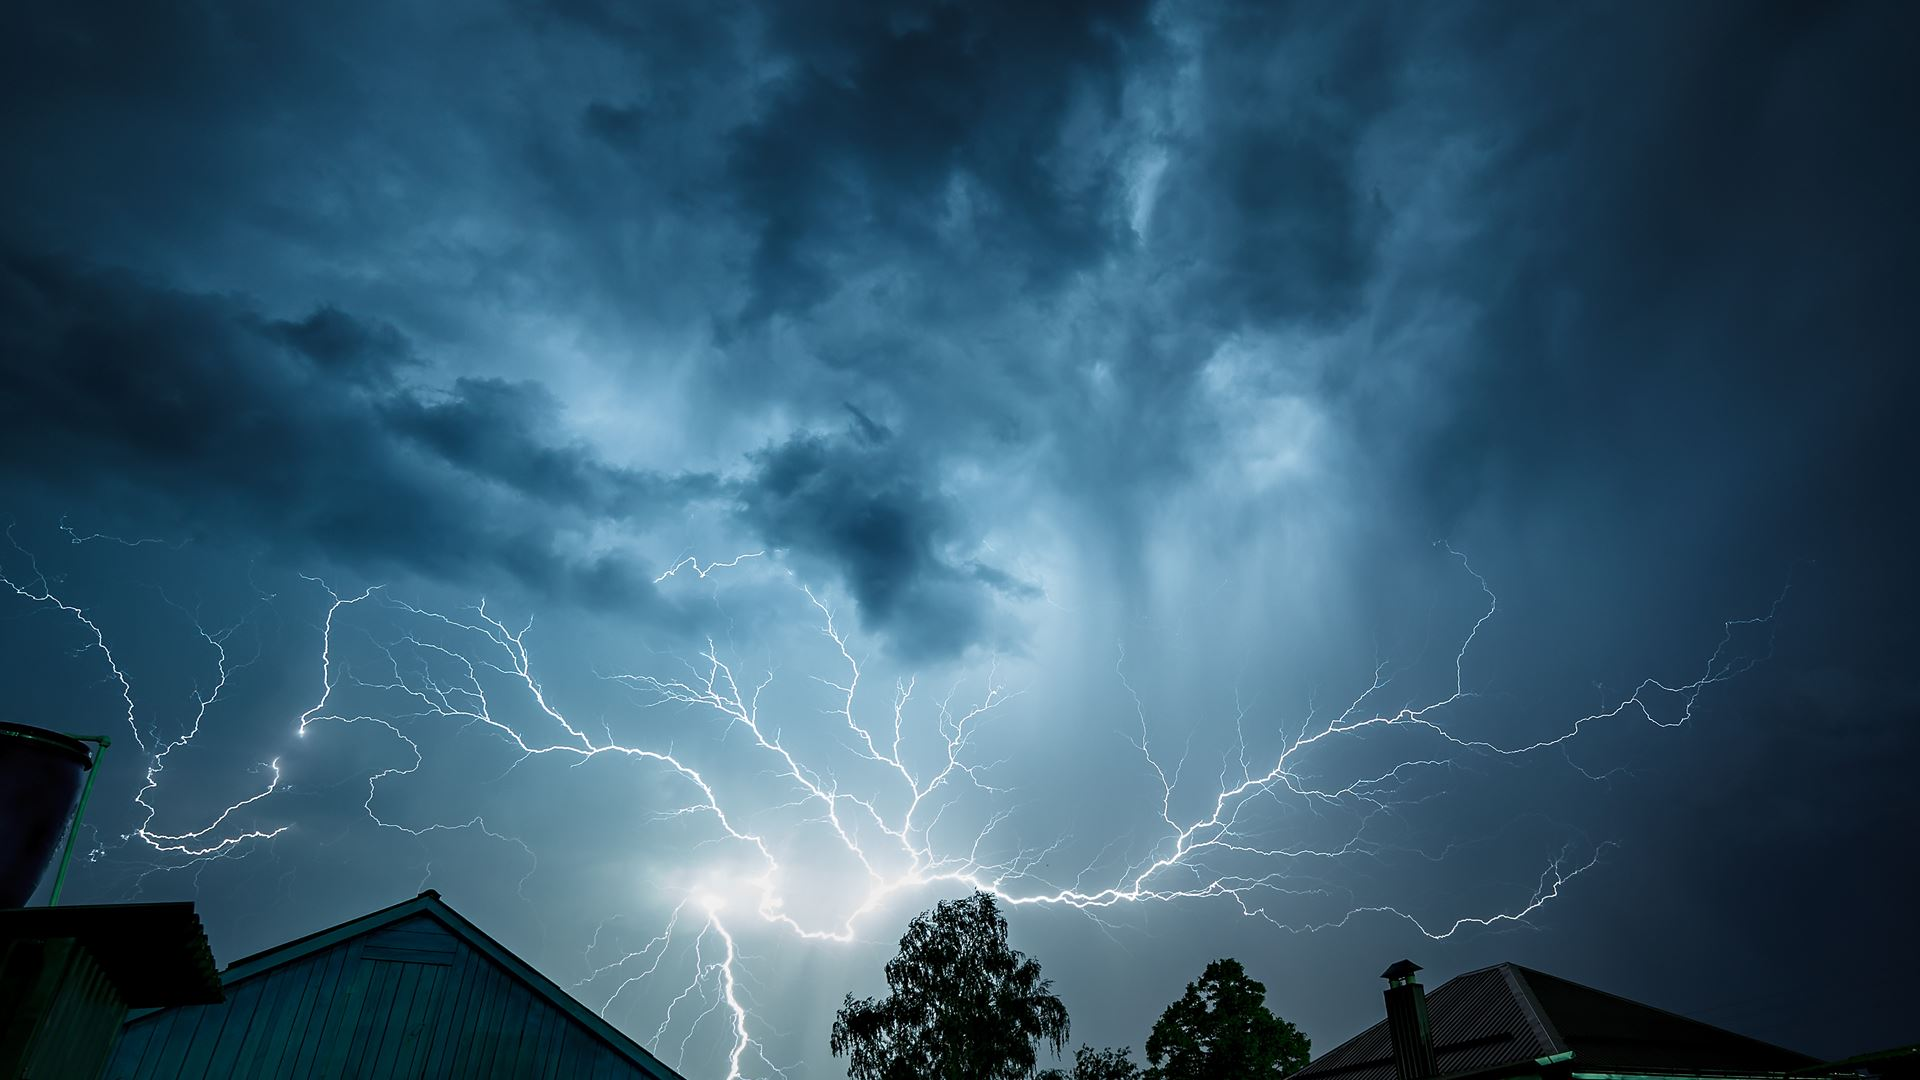 severe thunderstorms will develop in the midwest overnight